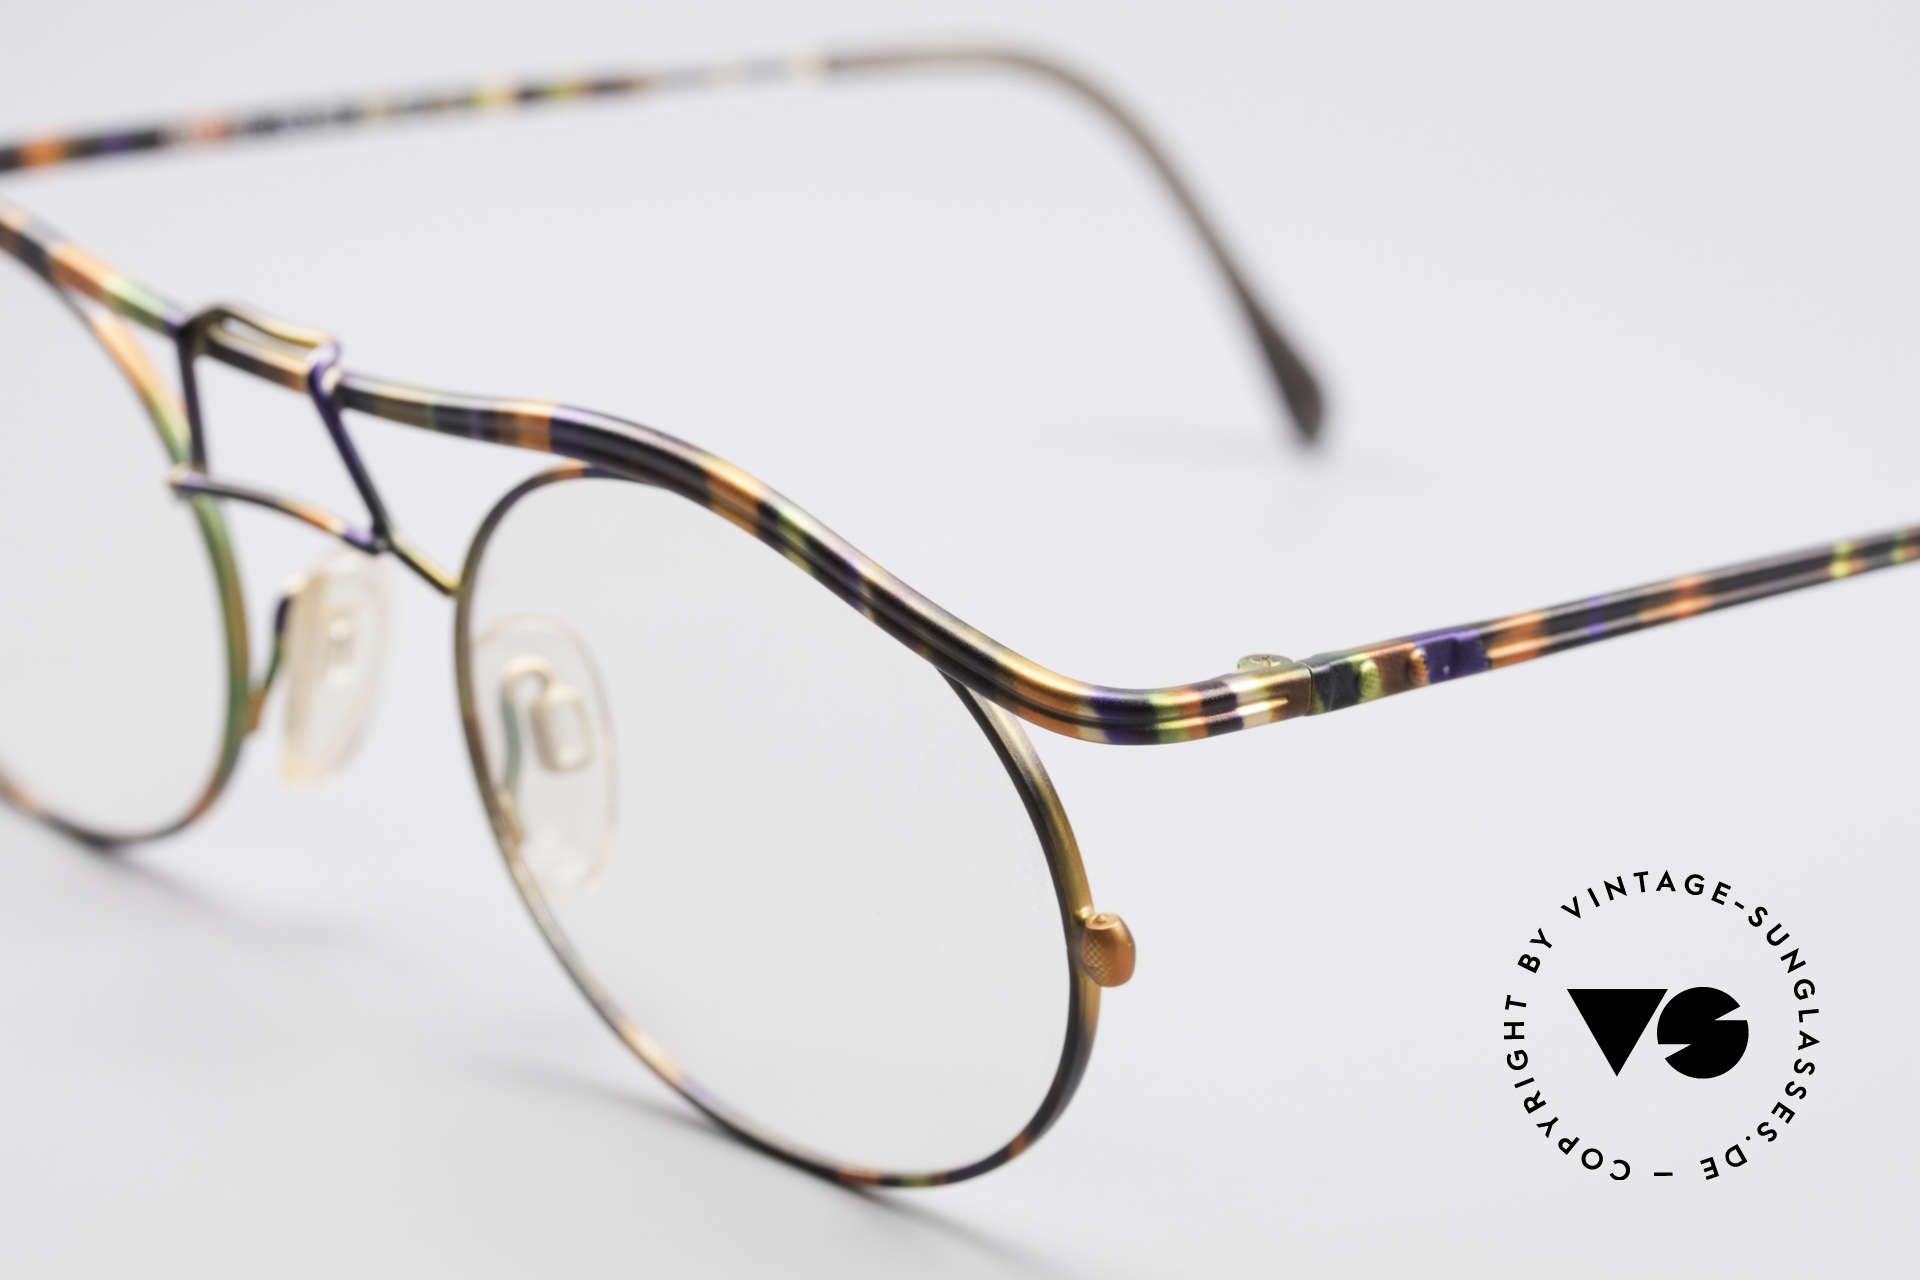 Cazal 1110 - Point 2 90's Industrial Eyeglass-Frame, never worn (like all our rare vintage glasses by CAZAL), Made for Men